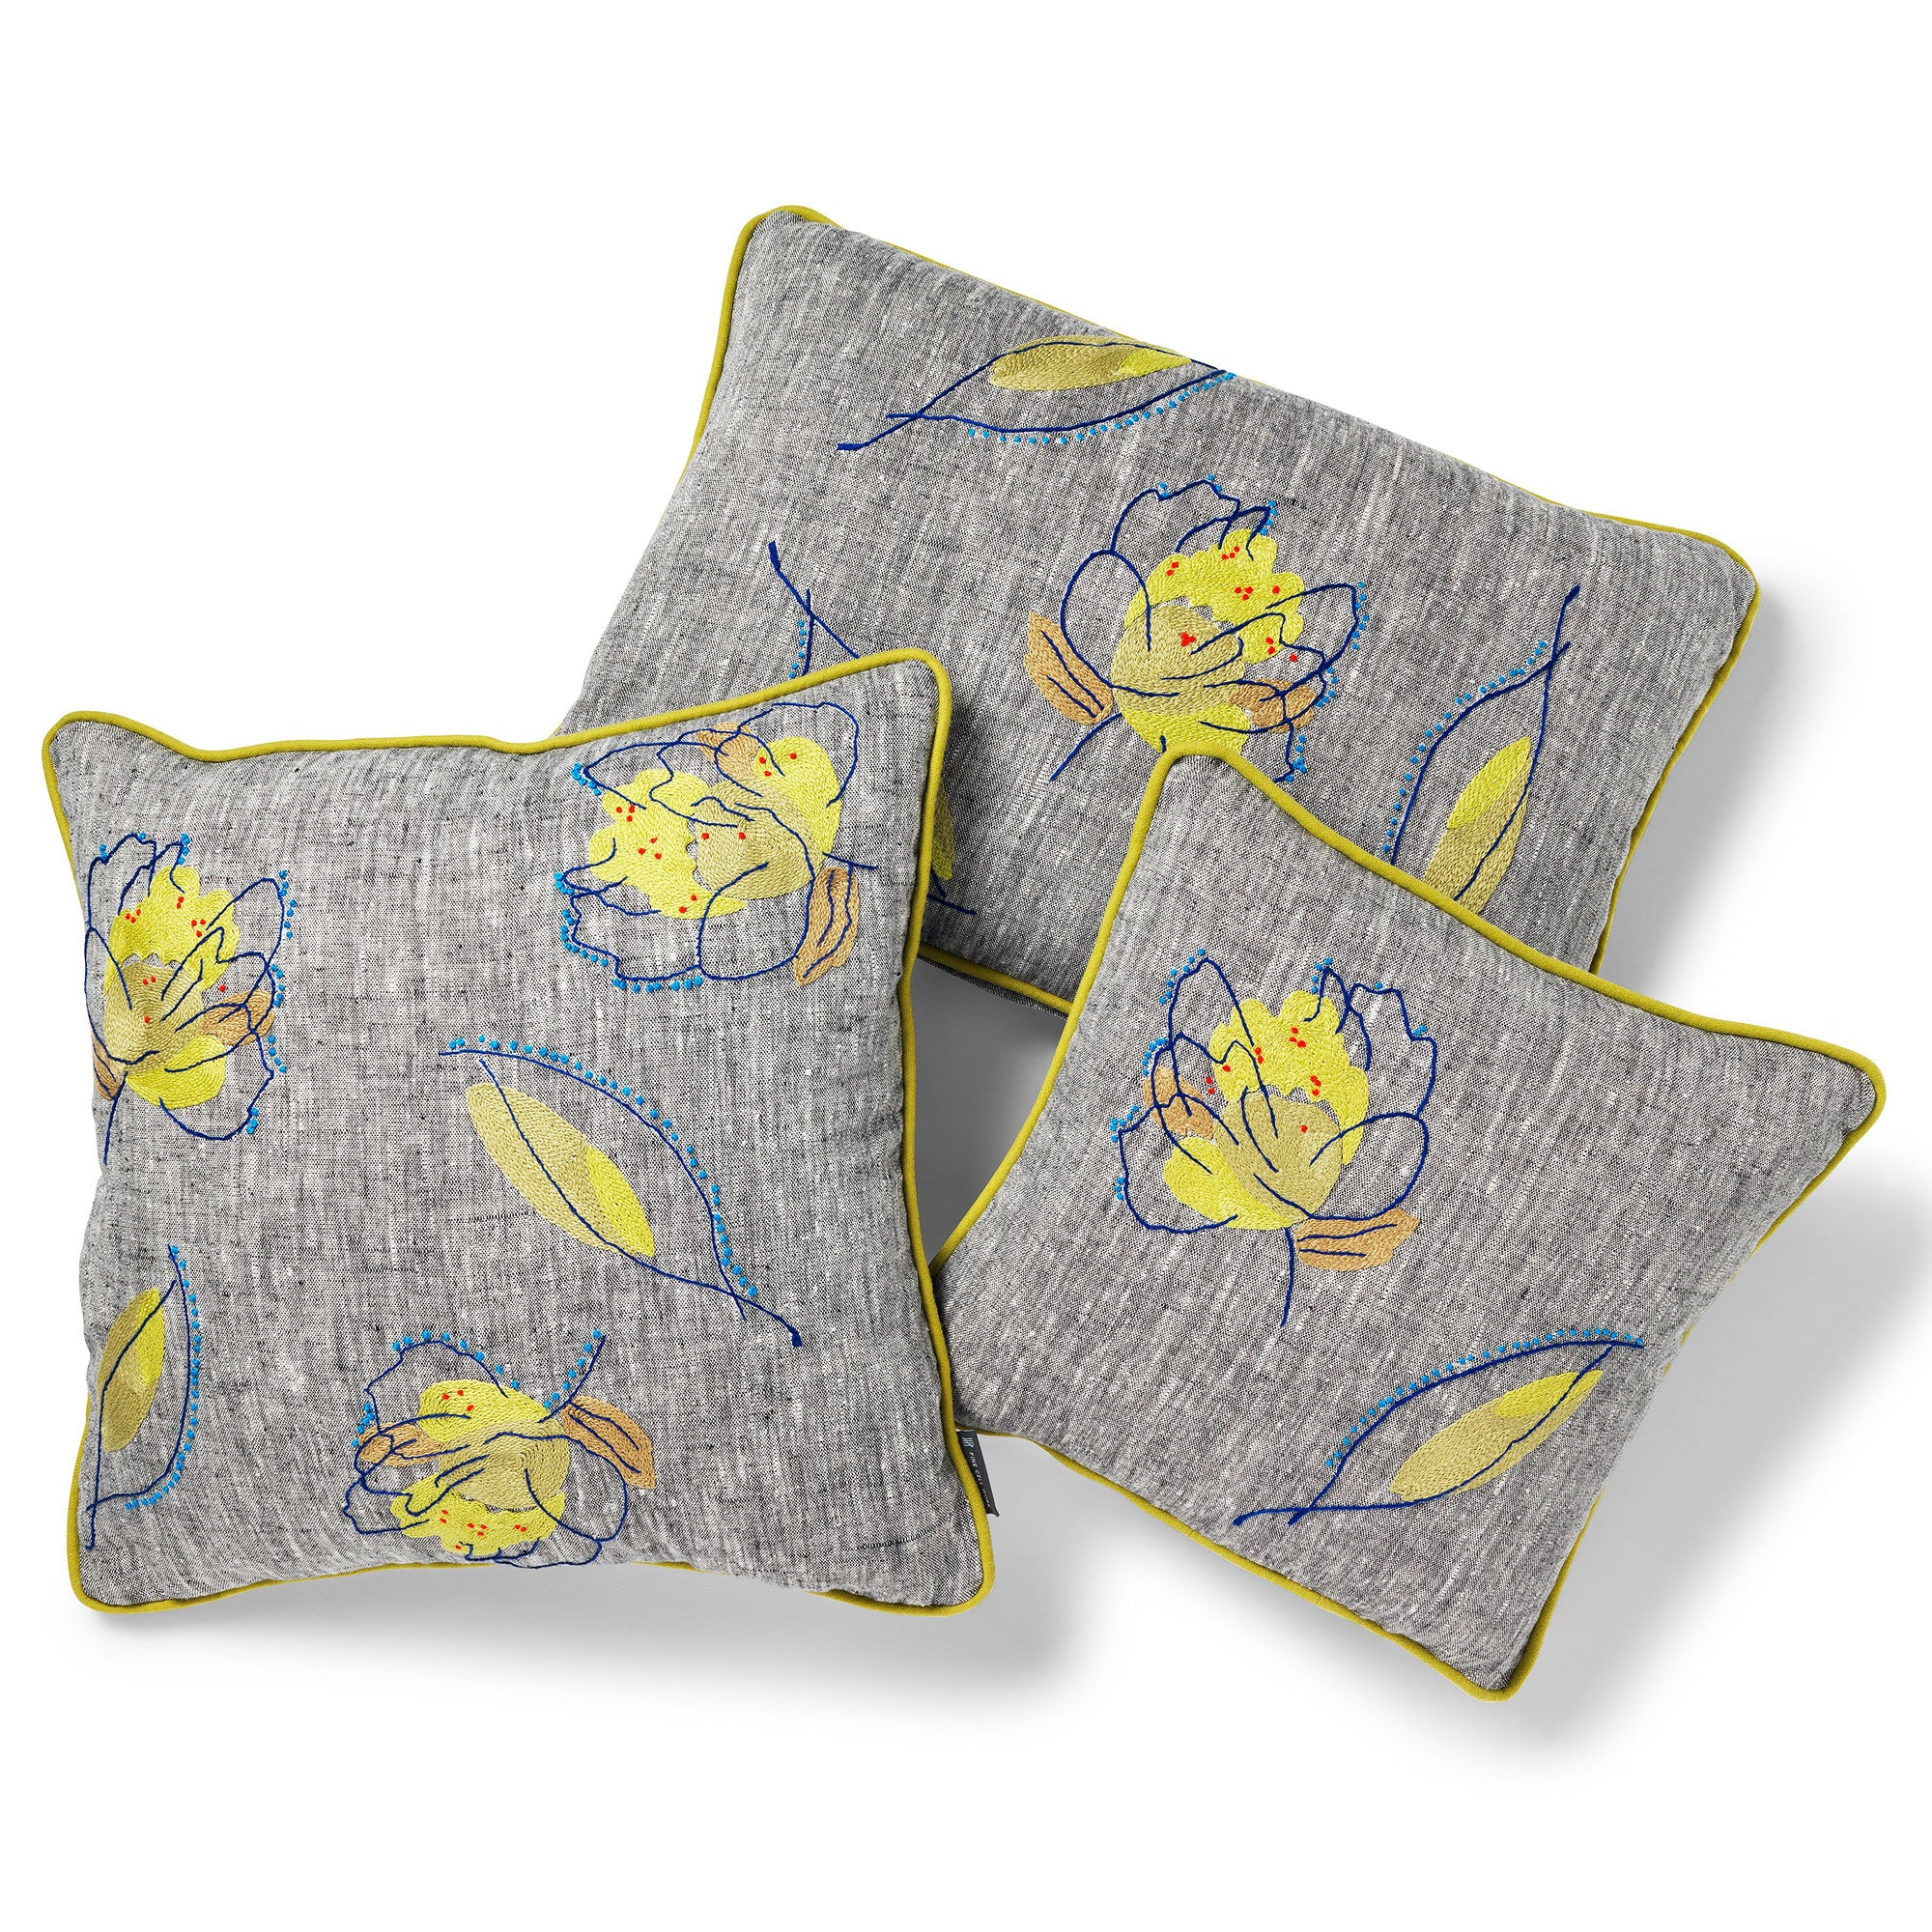 Kit Kemp for Fine Cell Work Rain Shadow Green Leaf Cushions